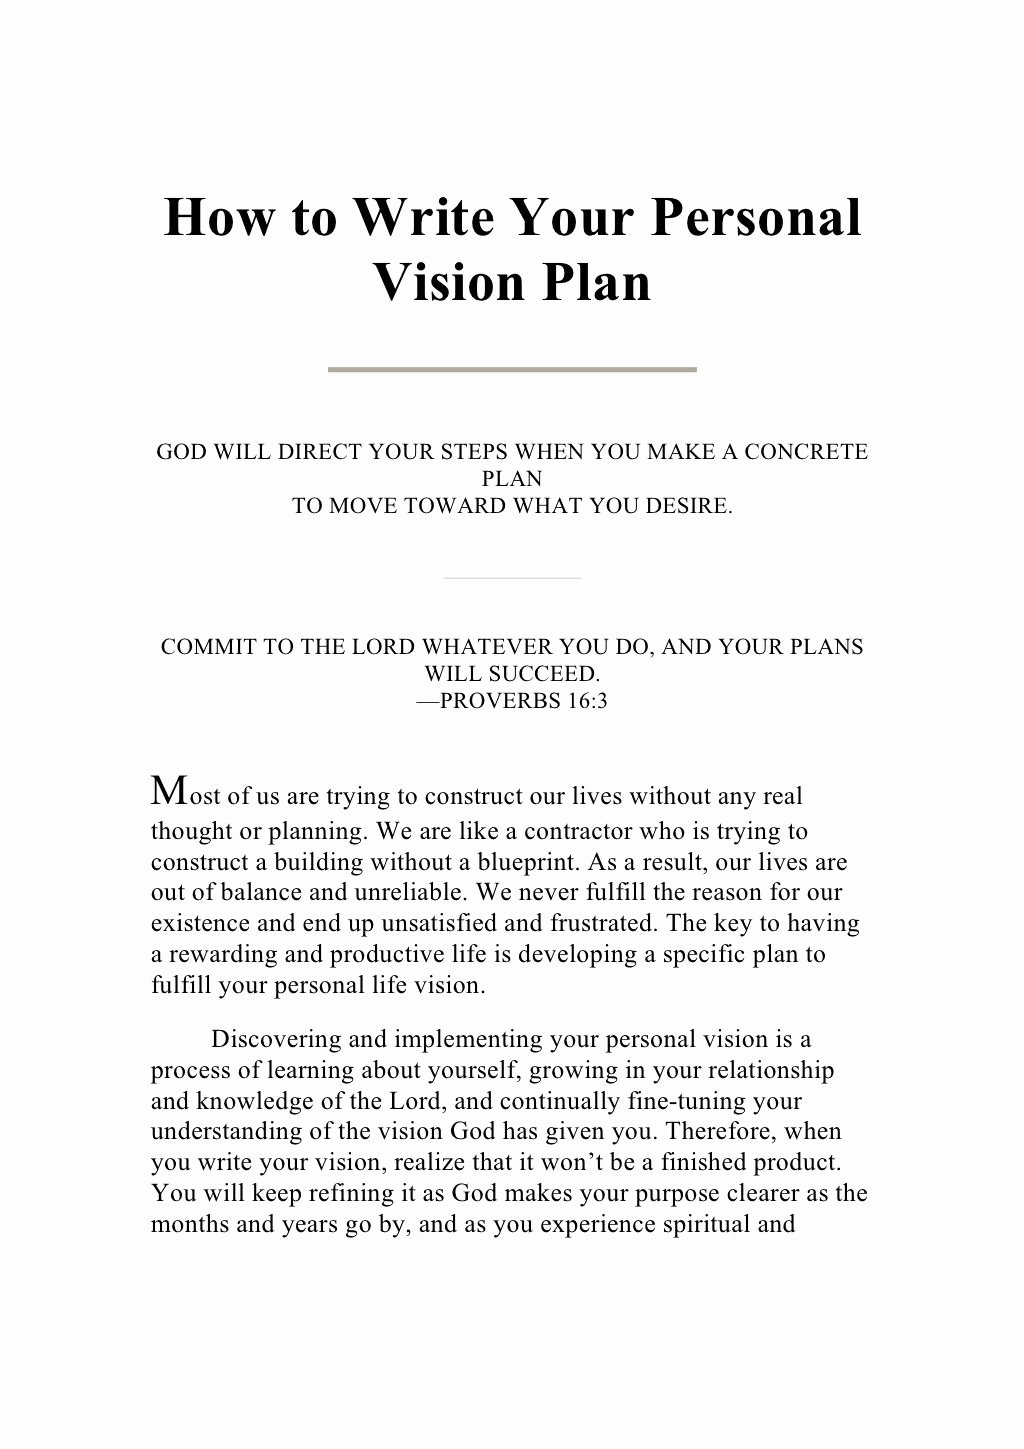 Statement Of Academic Goals Example Lovely Writing Your Personal Vision Plan by Guest73de2ec Via